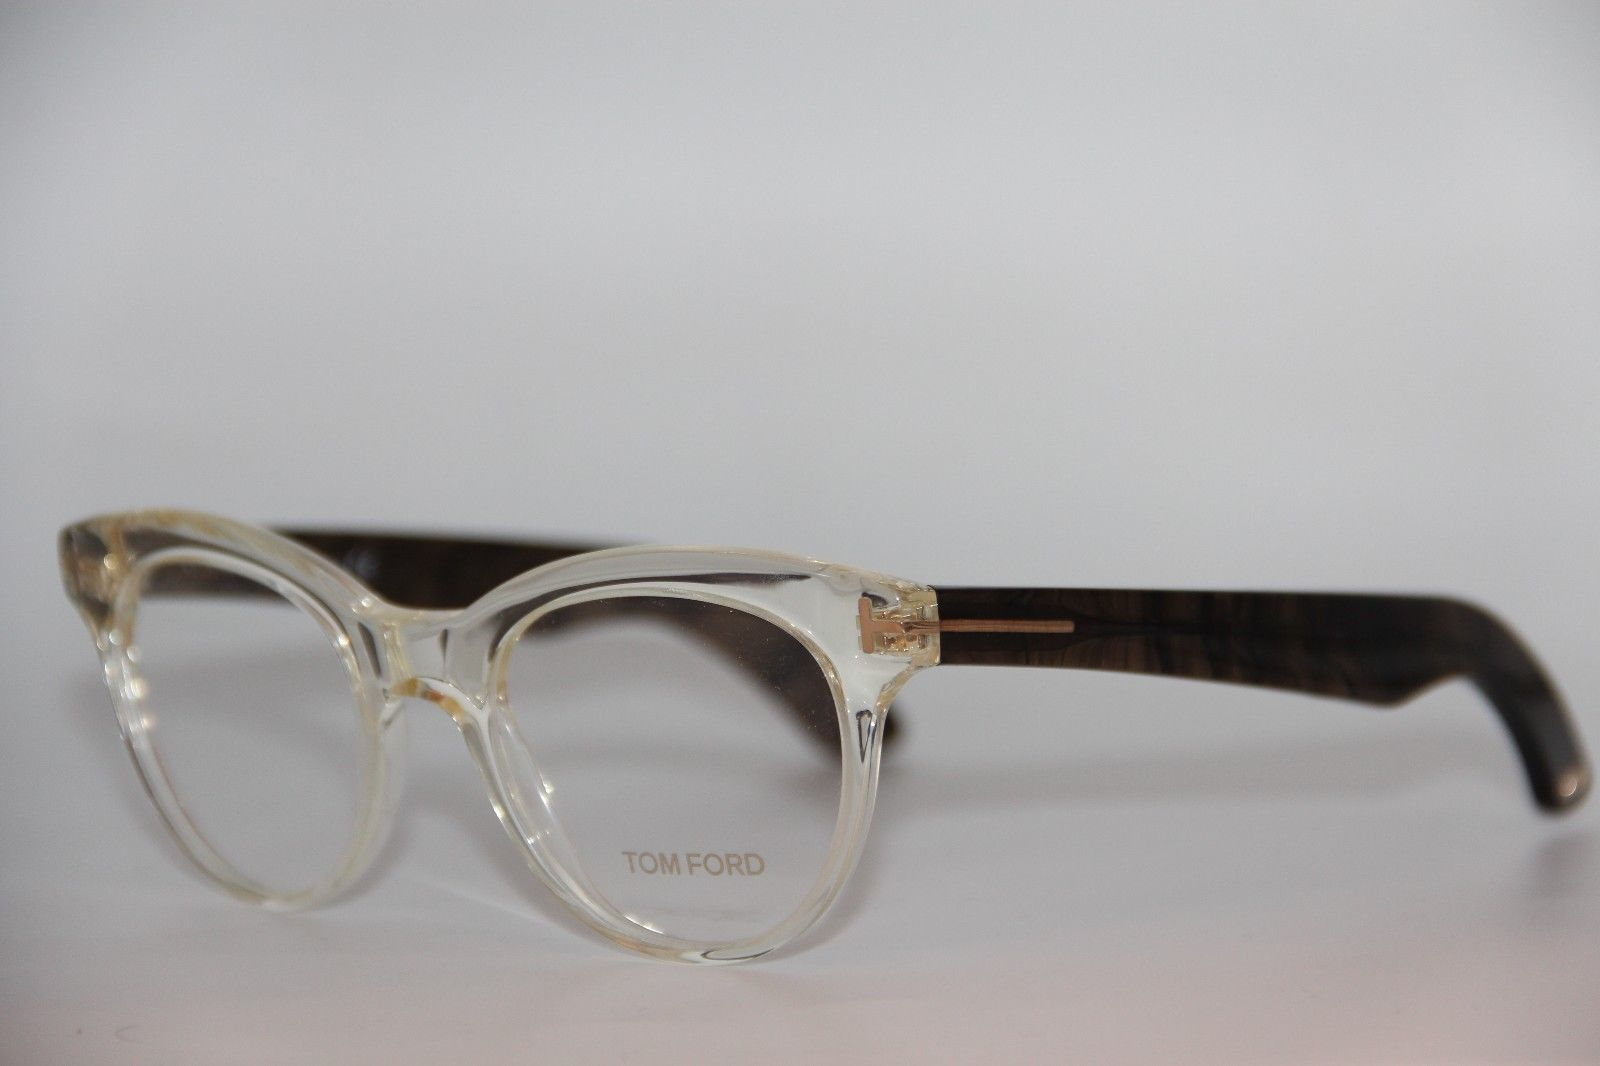 4e18e98d69d New Tom Ford Tf 5378 026 Clear Eyeglasses and 13 similar items. 57